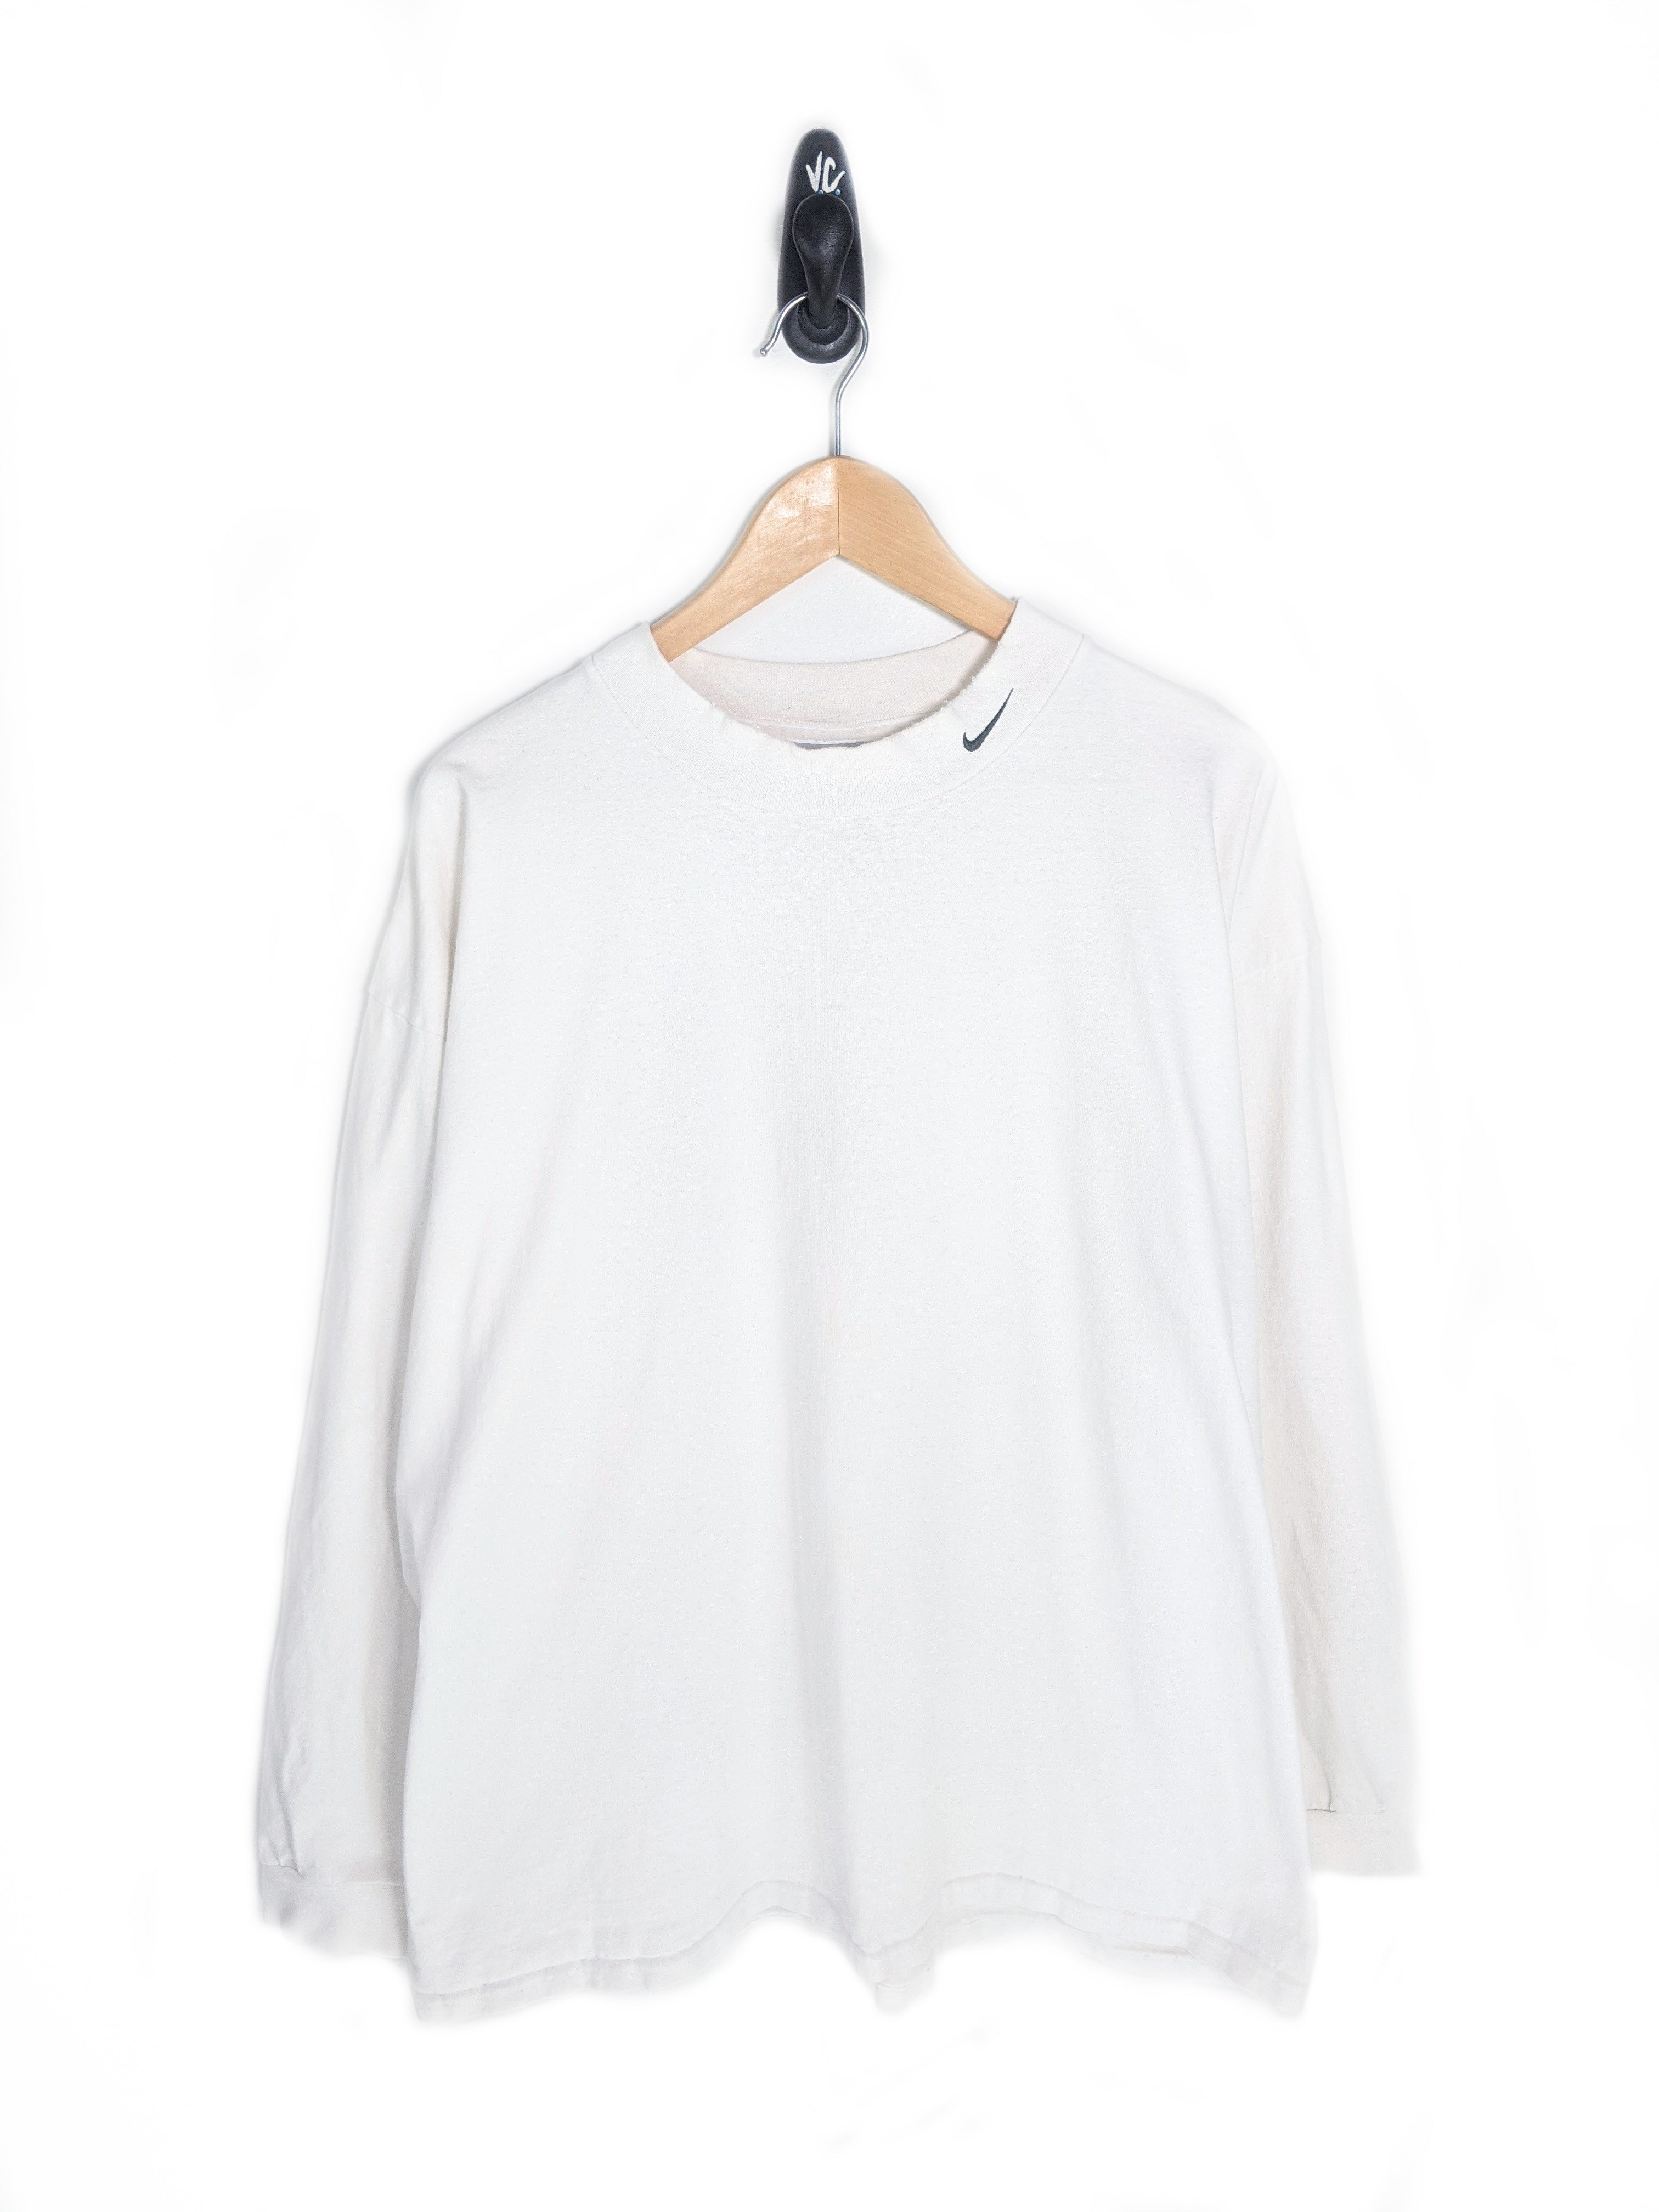 High Collar Swoosh Long Sleeve (XL)